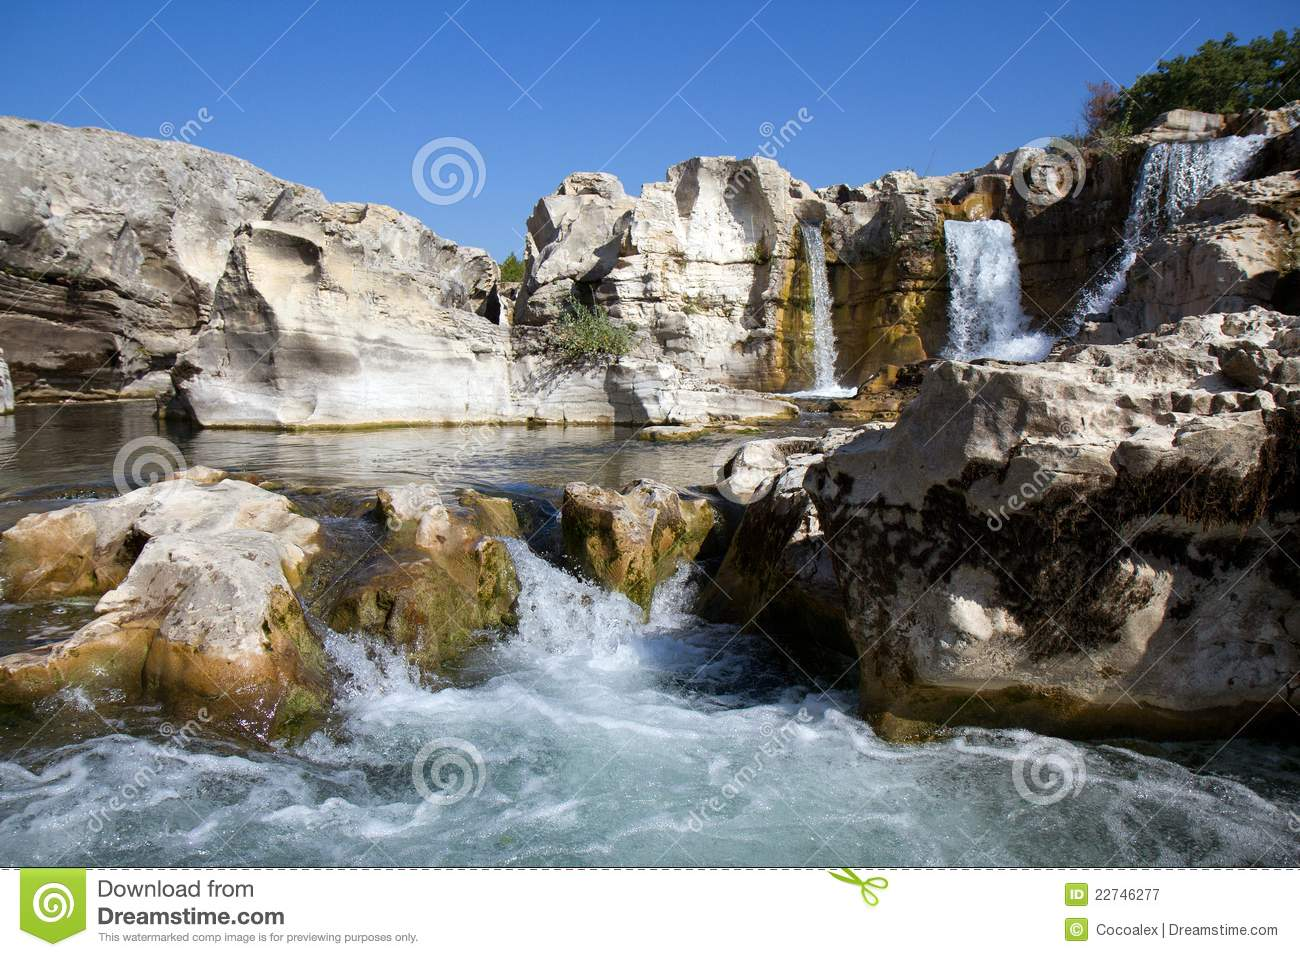 Sautadets Waterfalls On The Ceze River Royalty Free Stock.